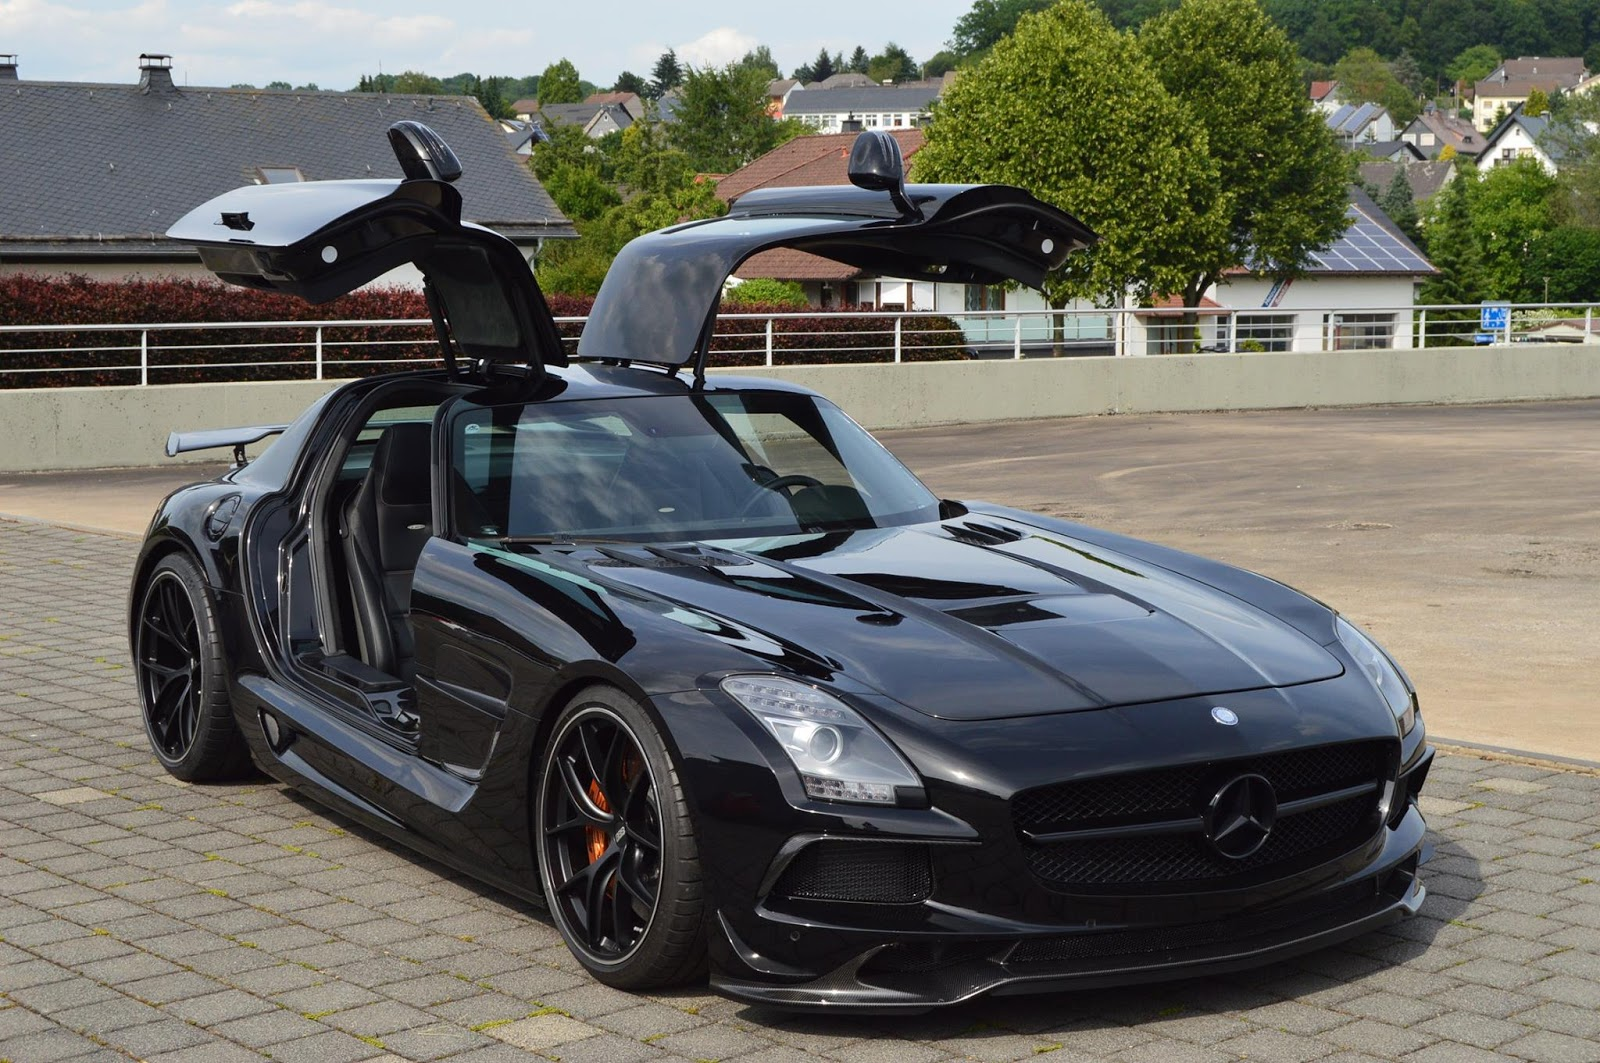 Mercedes - Benz Sls Amg Inden Design Breathes Life Into The Mercedes Sls Amg